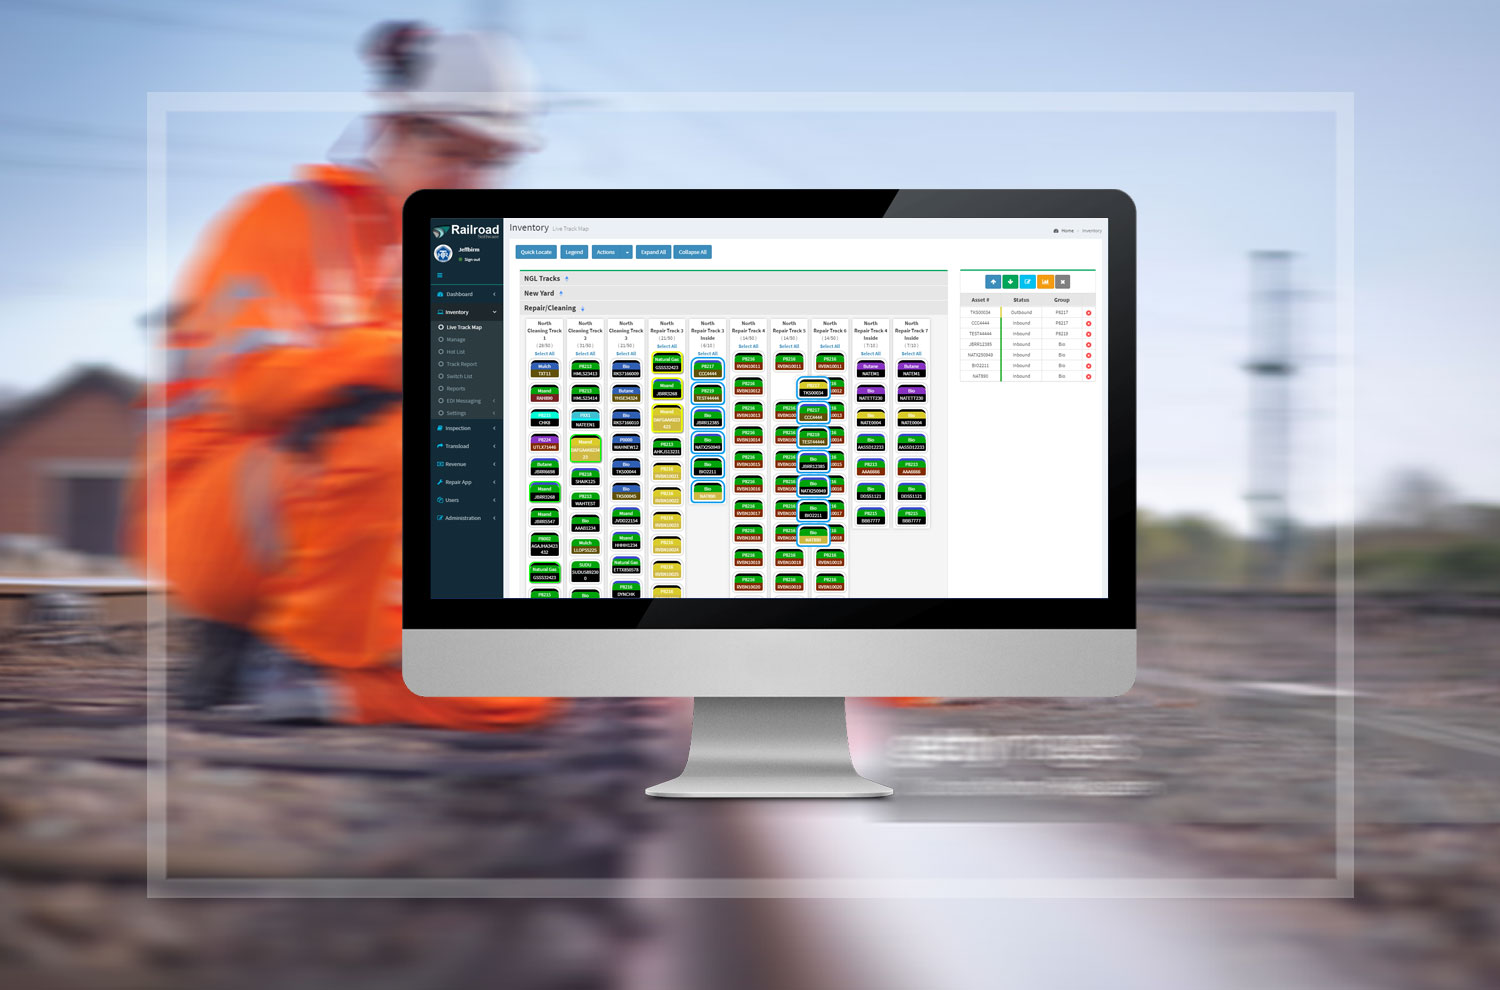 The track map's color coded system displays key identifiers for railcars to make managing the yard easier